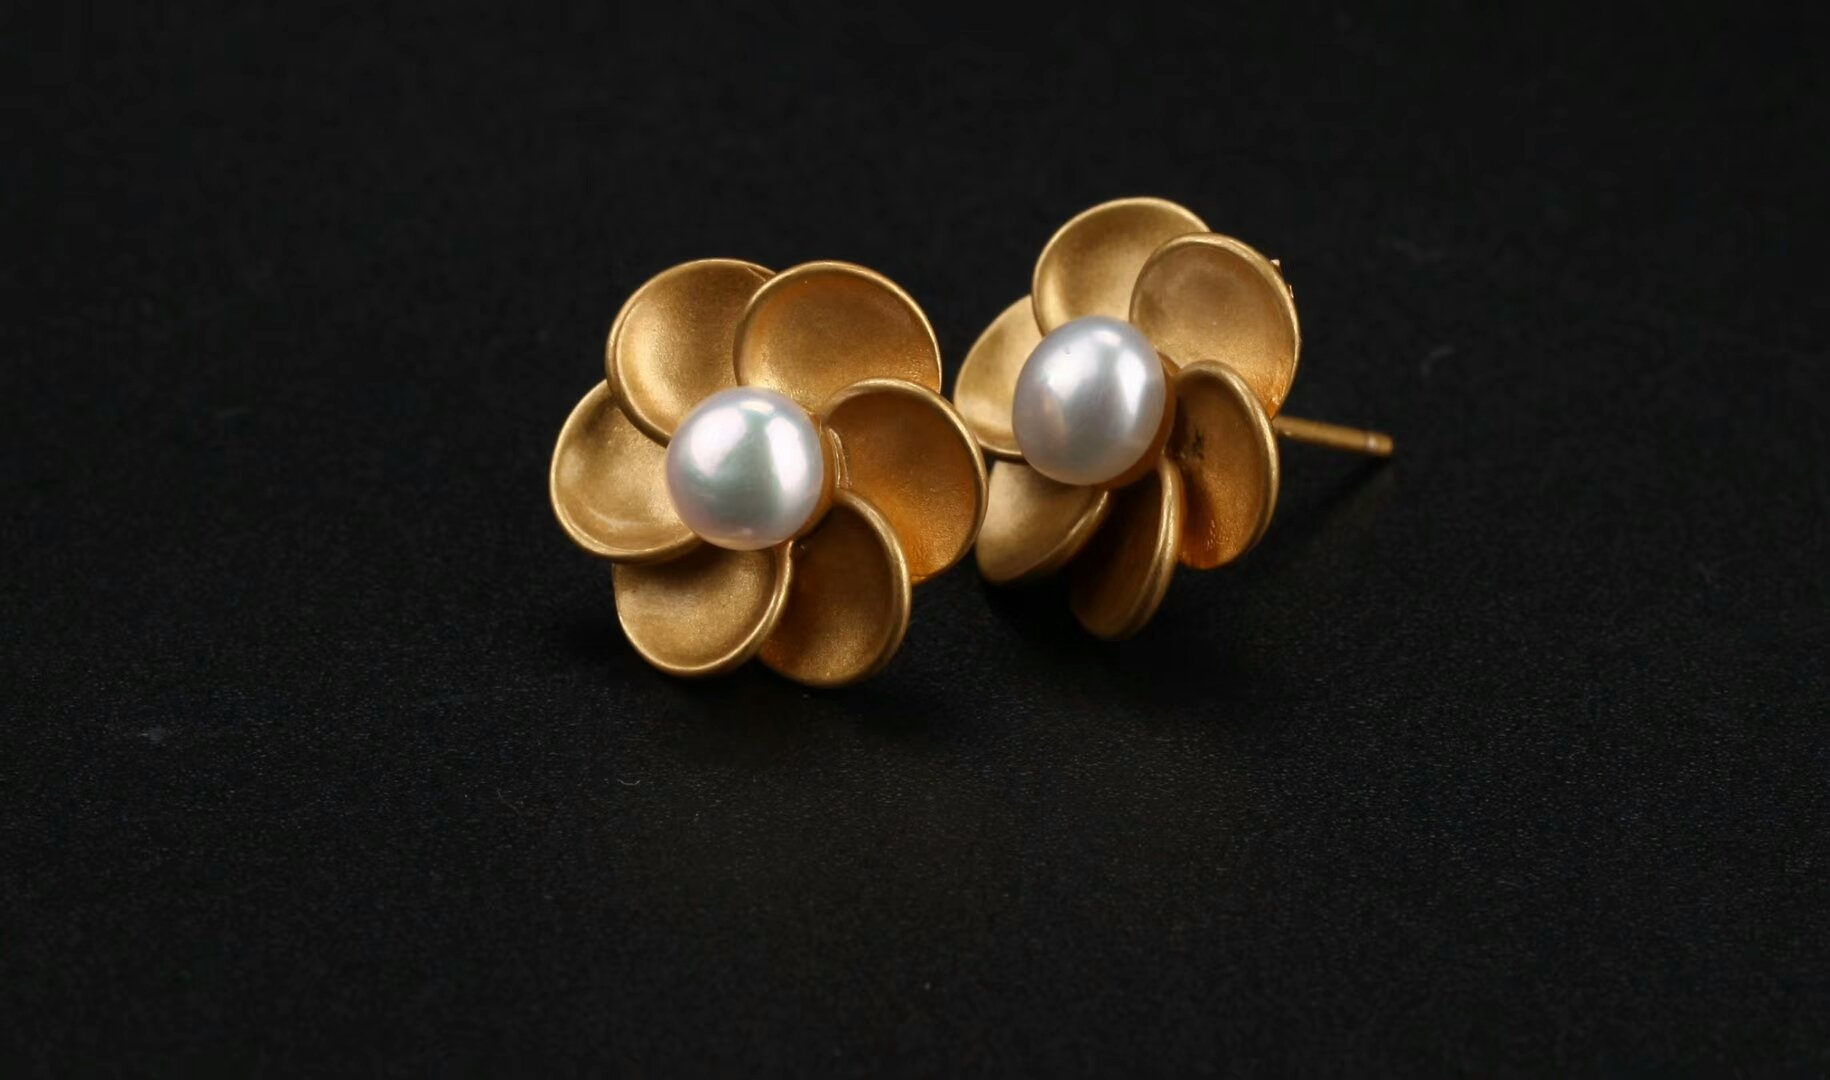 com ewa pdp earrings johnlewis main buyewa white big at flower gold diamond john rsp stud online